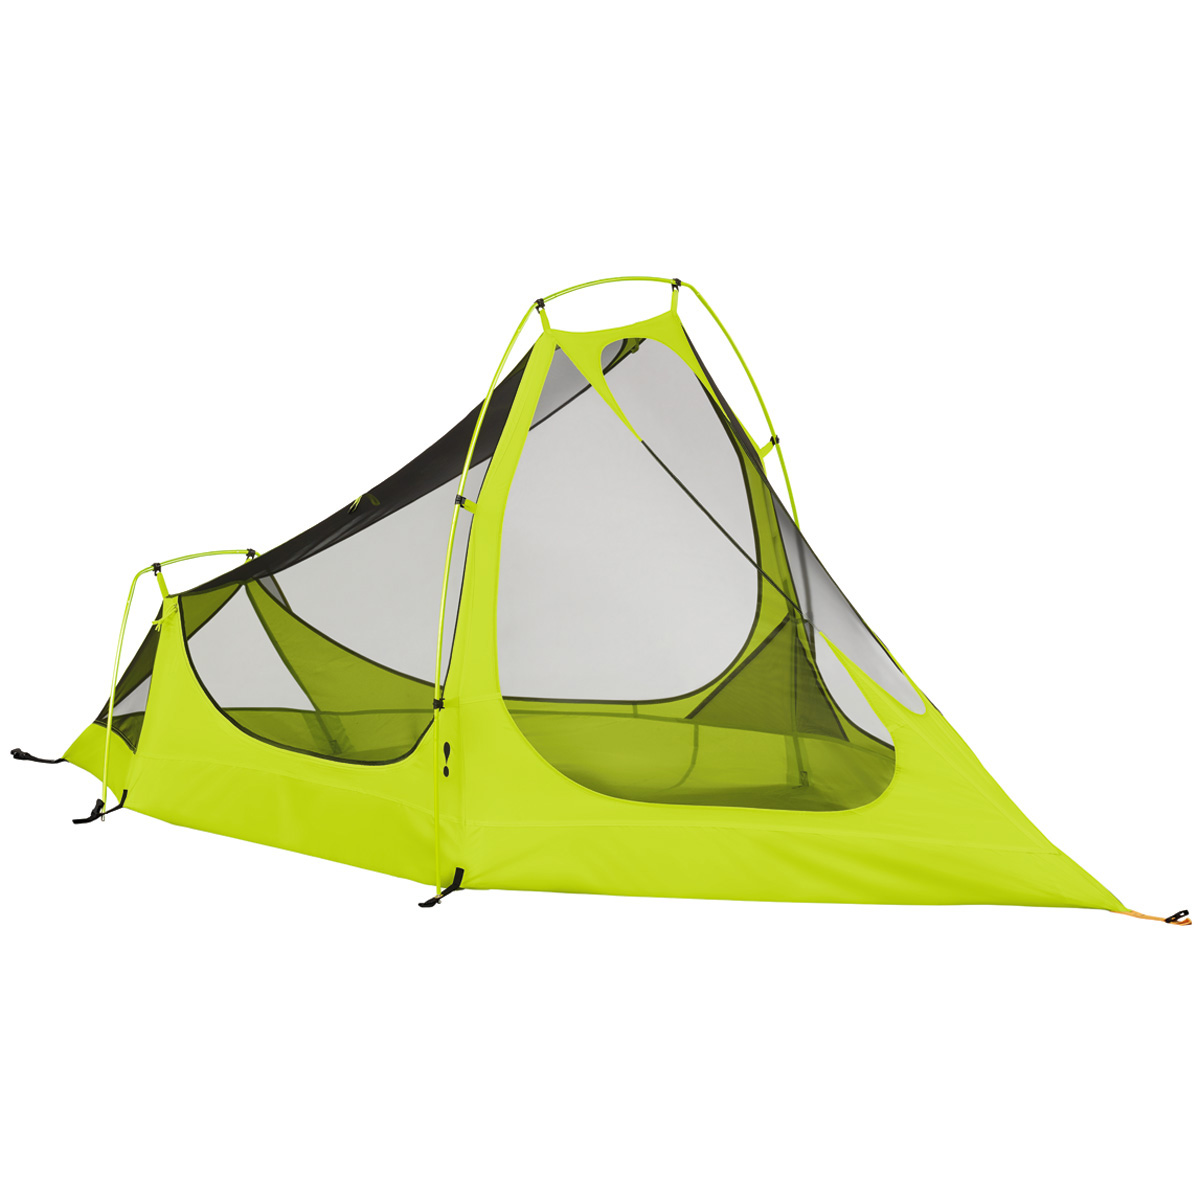 Spitfire 1 Person Tent  sc 1 st  Tents | Eureka! - Johnson Outdoors & Solitaire 1 Person Tent | Eureka!